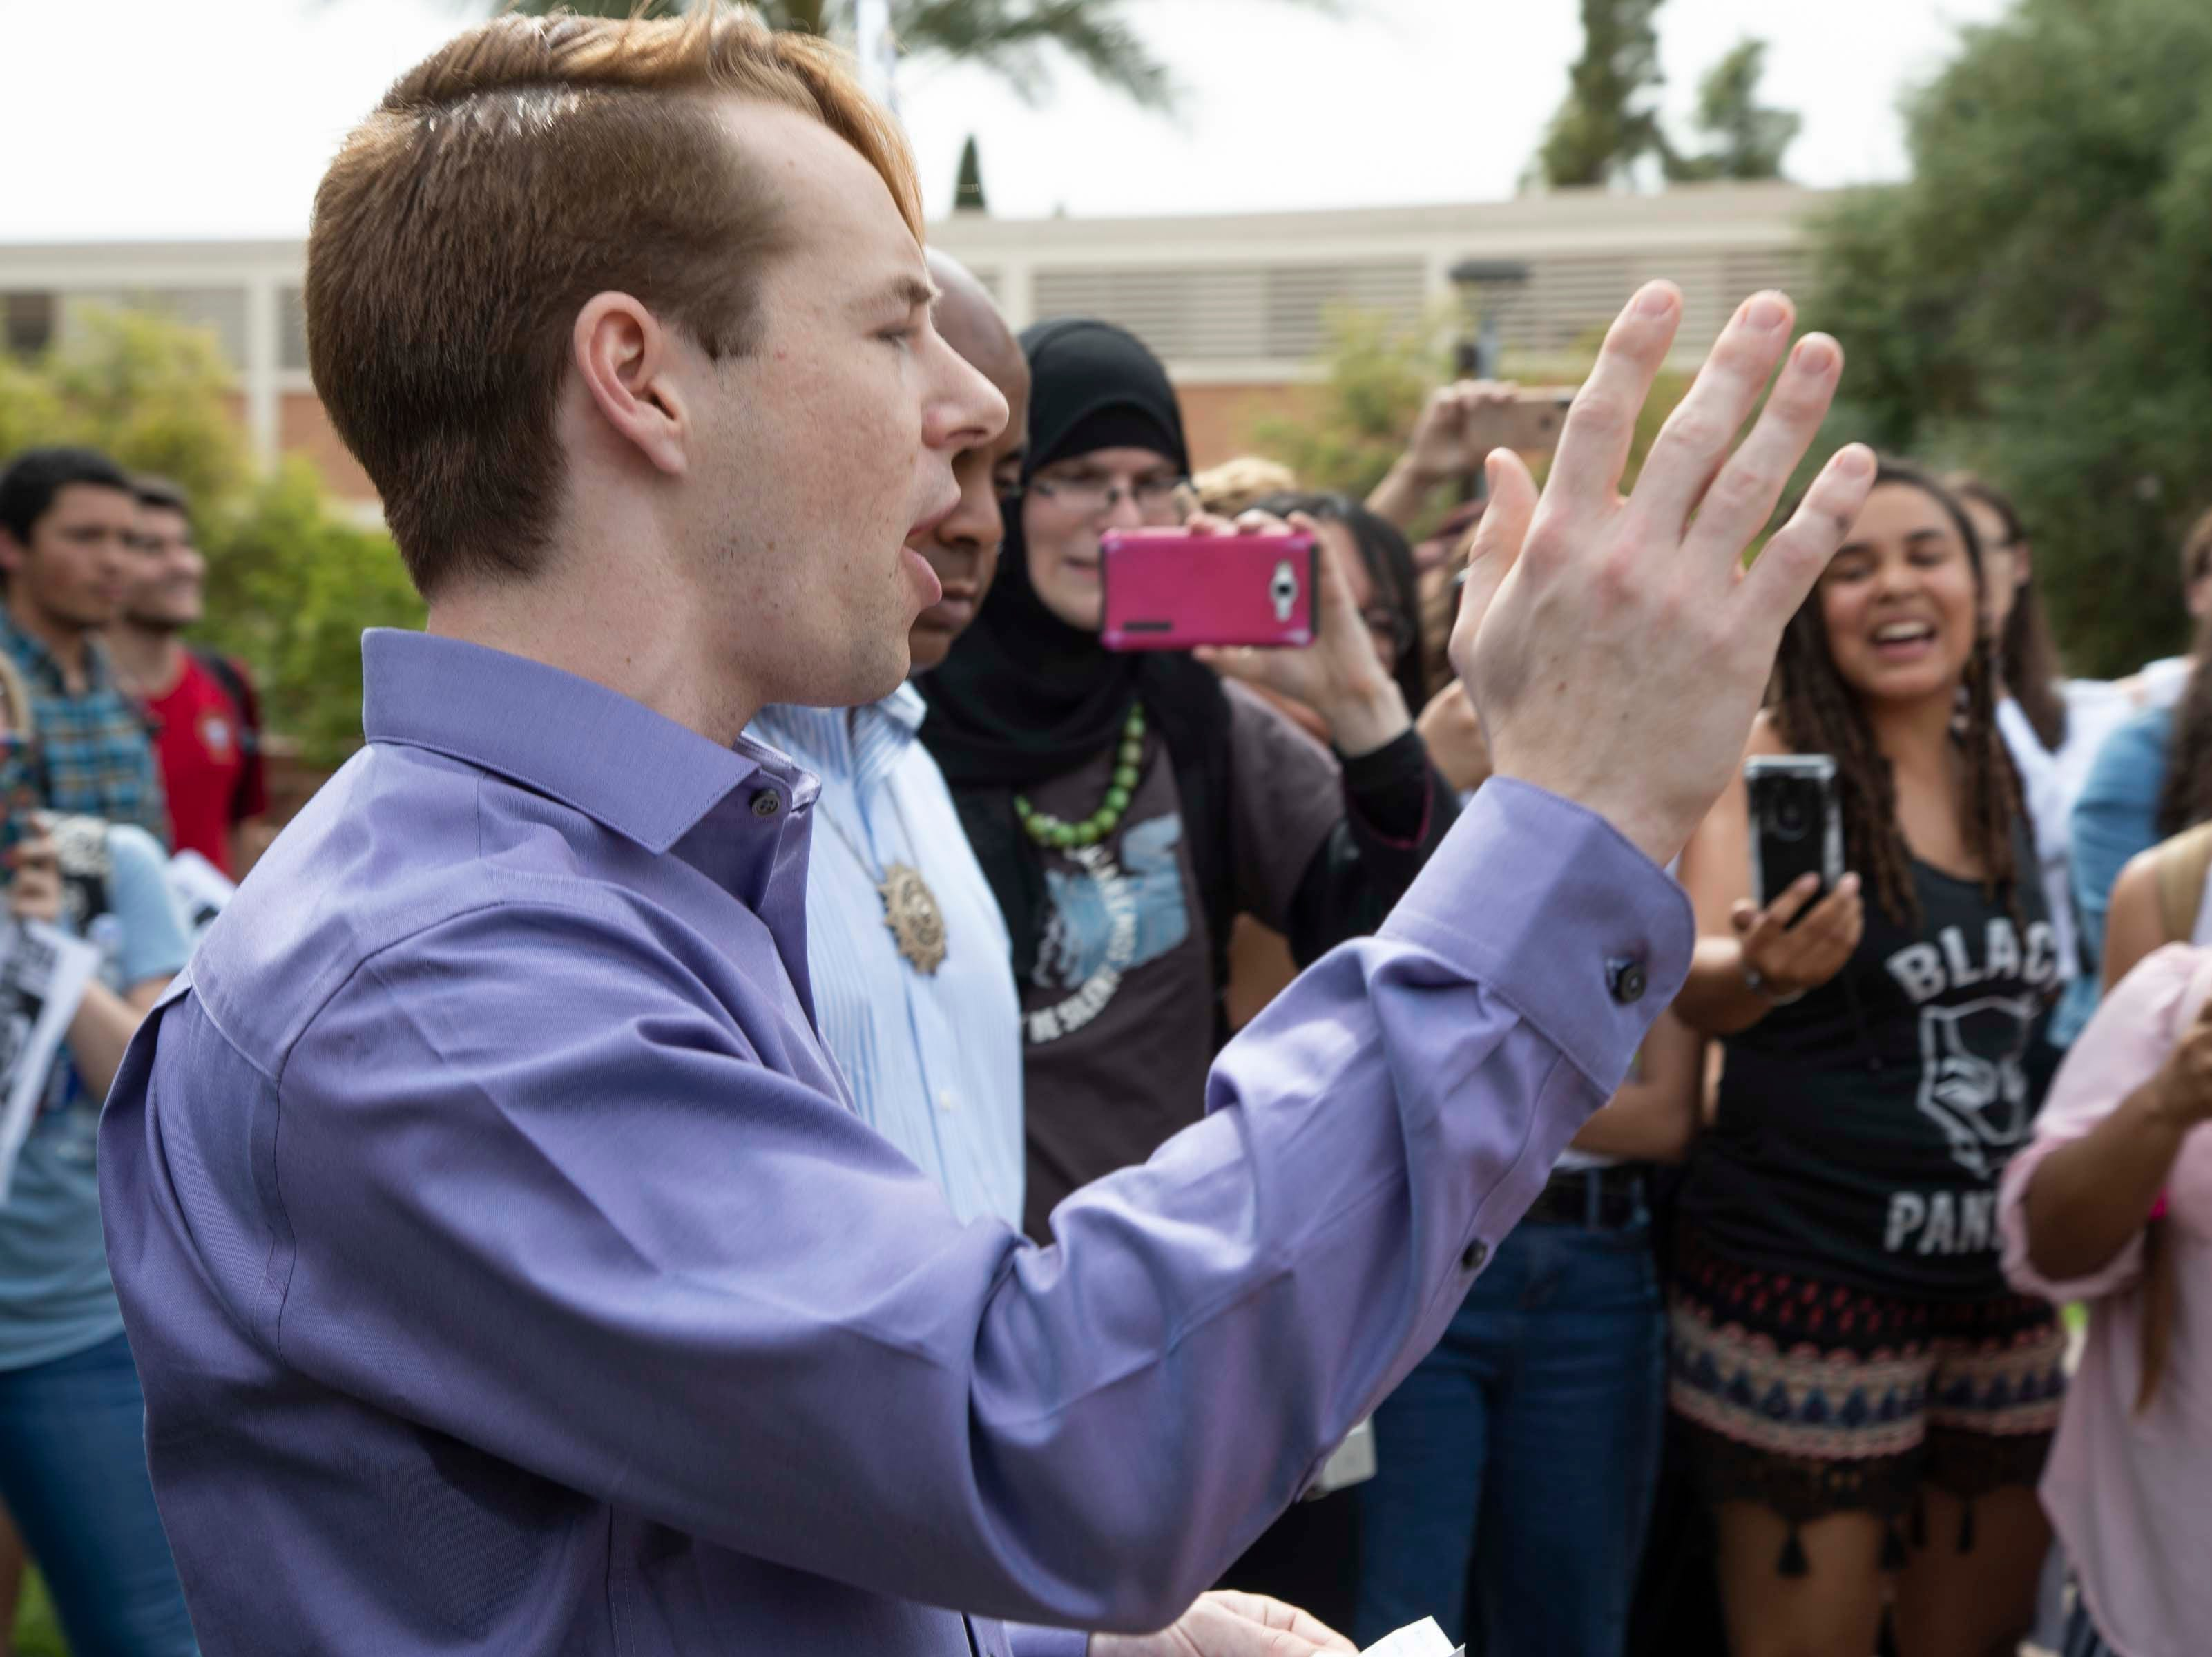 College Republicans United co-founder Kevin Decuyper publicly apologizes in front of Old Main at ASU on March 26, 2019.